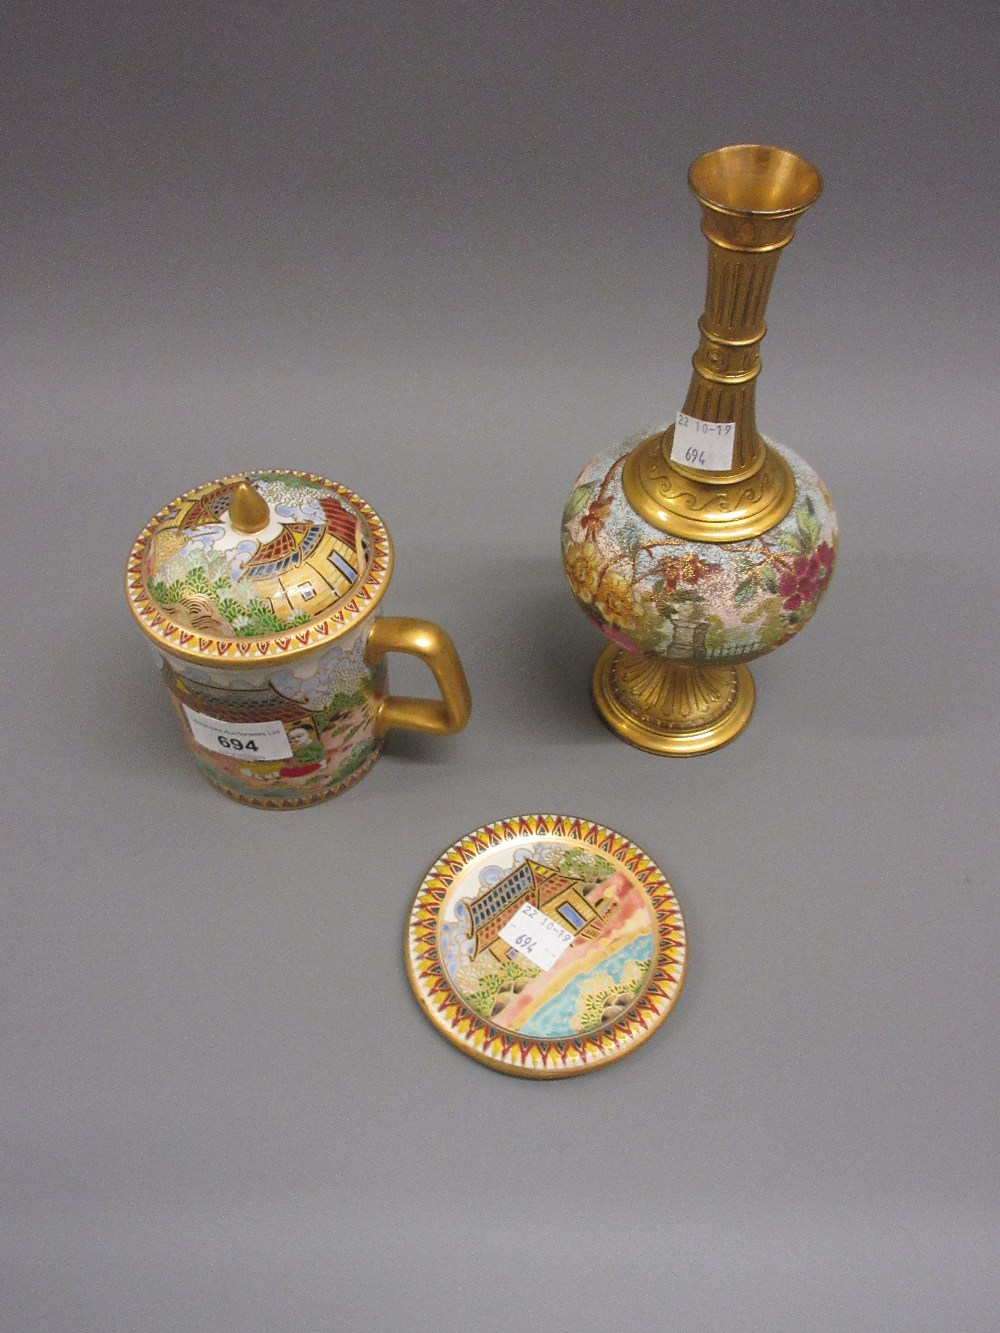 Lot 694 - Floral decorated stoneware and gilt metal mounted pedestal vase and a Thai covered cup and saucer